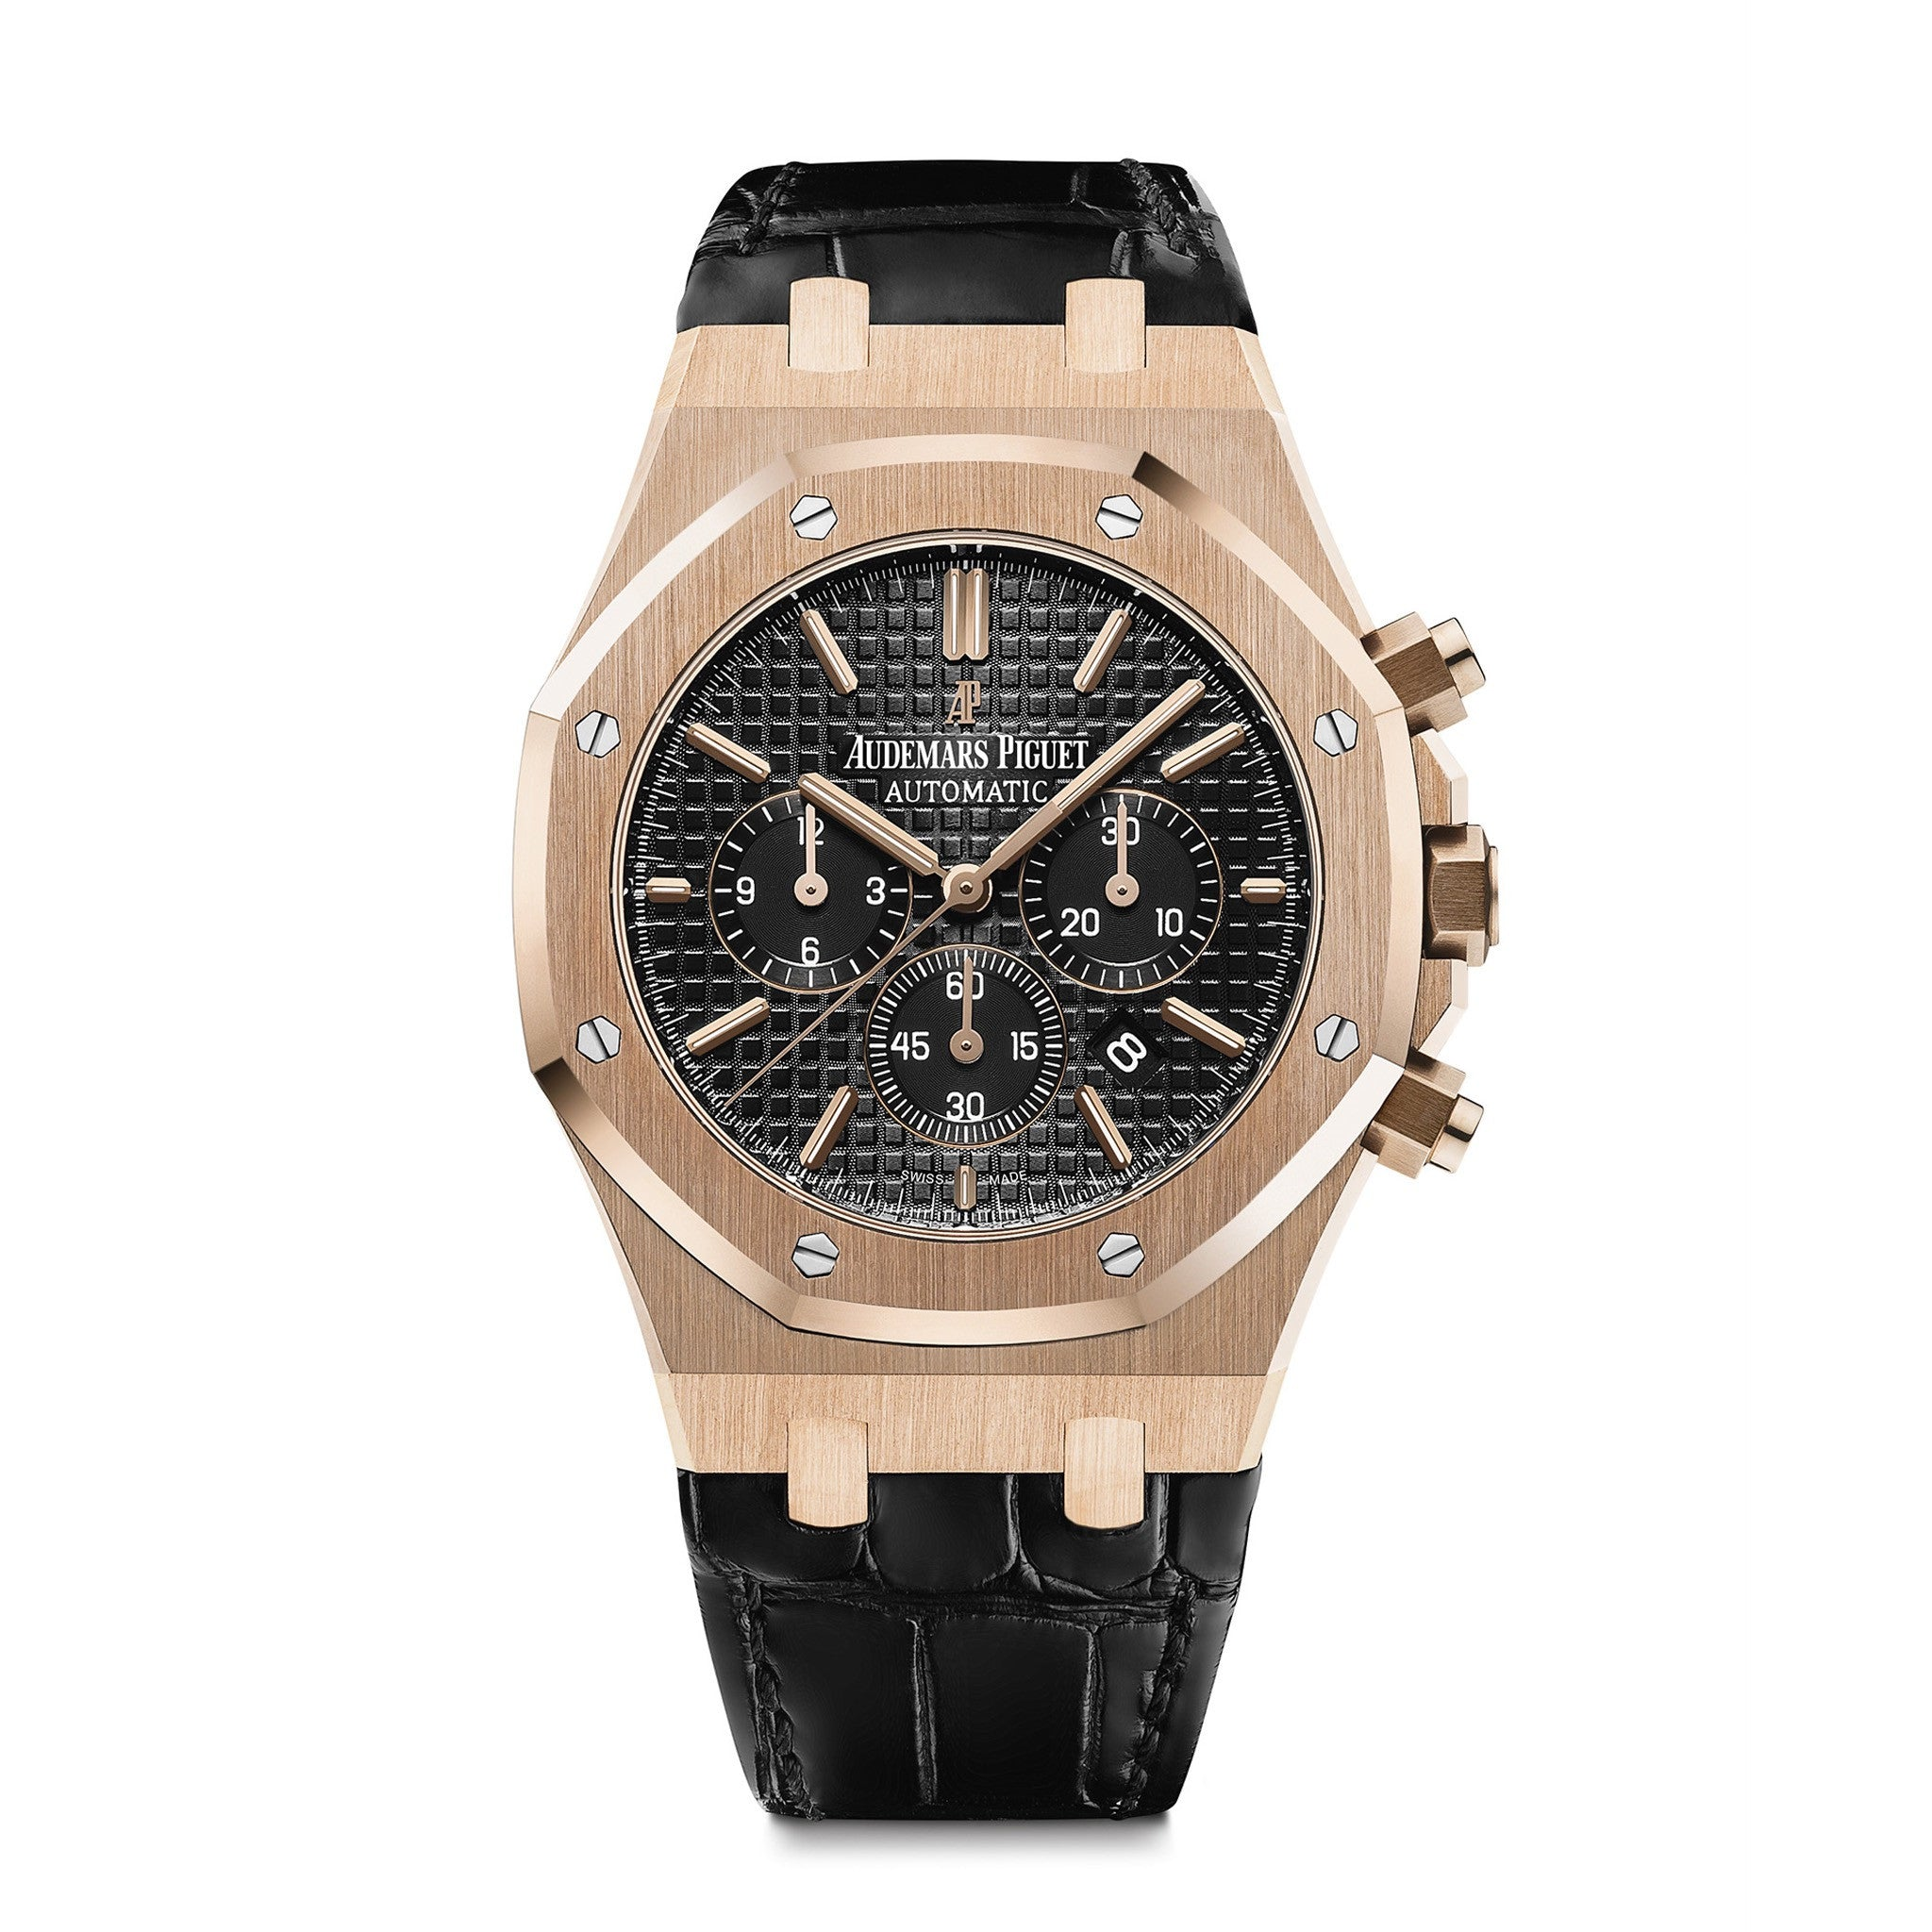 Royal Oak Chronograph 26320OR.OO.D002CR.01 - Audemars Piguet